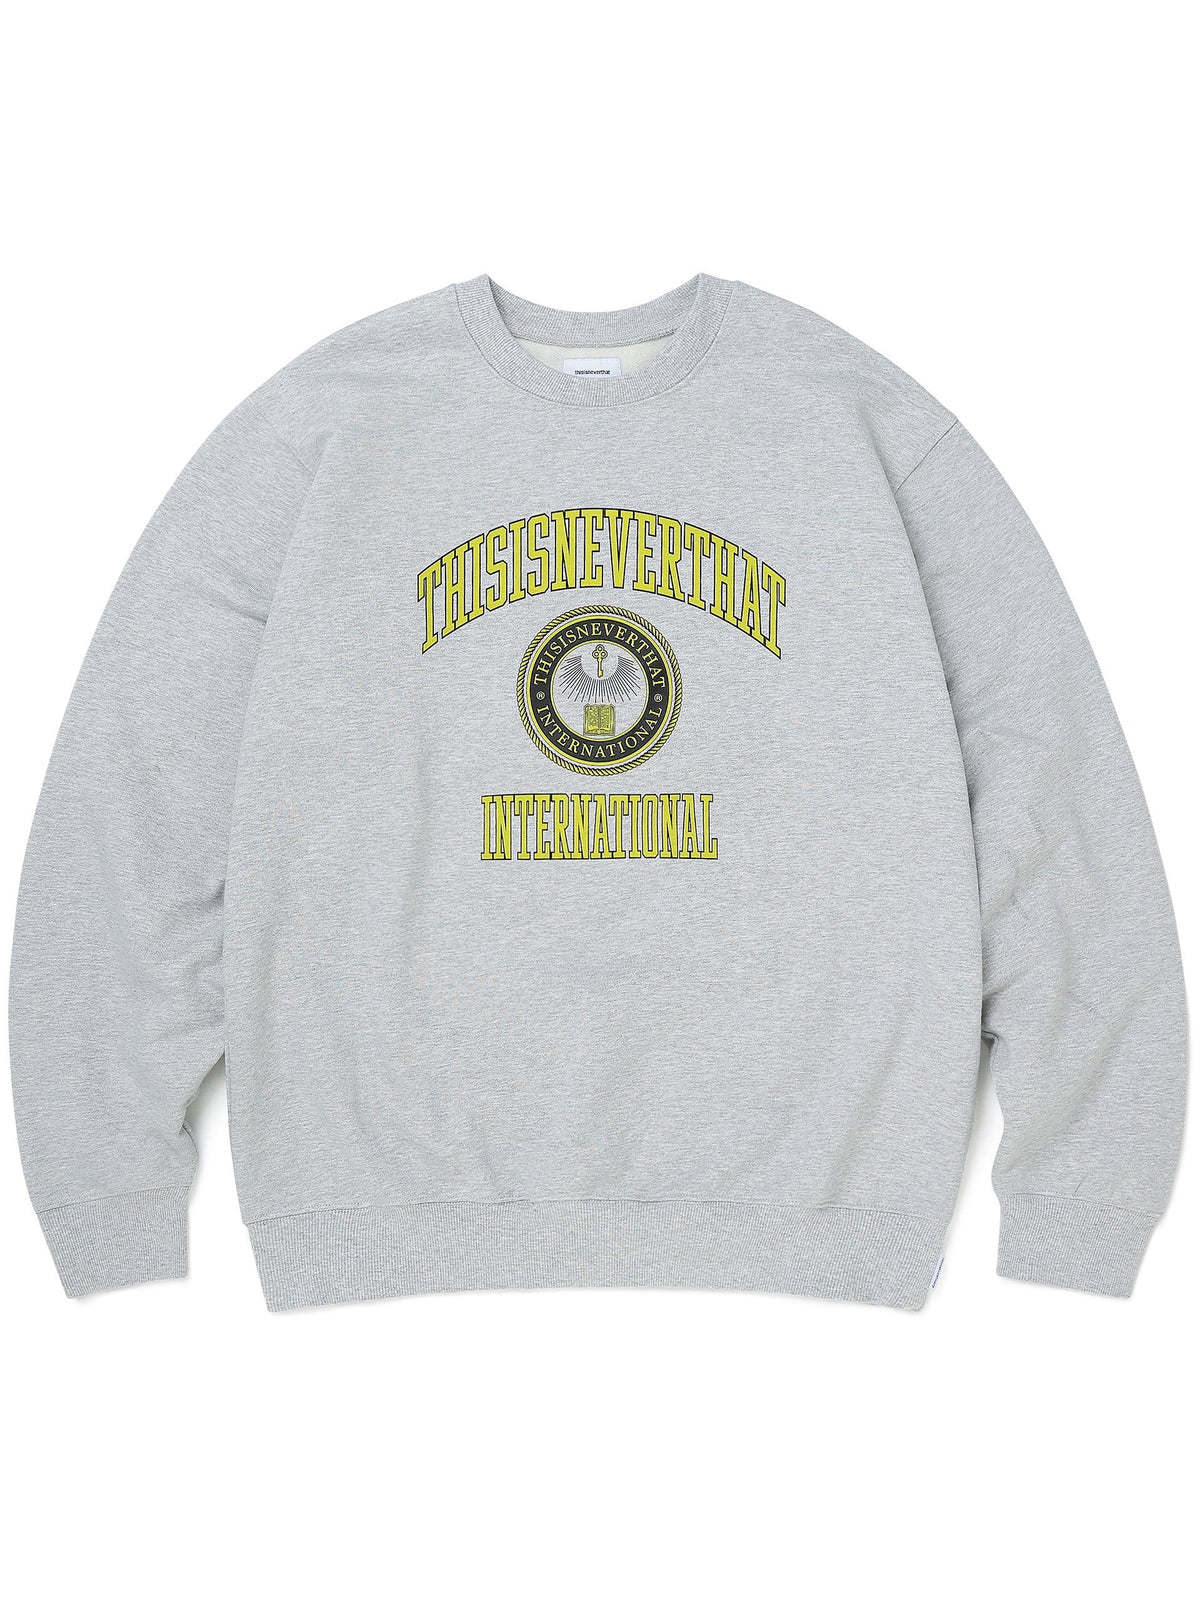 DAD Crewneck - thisisneverthat